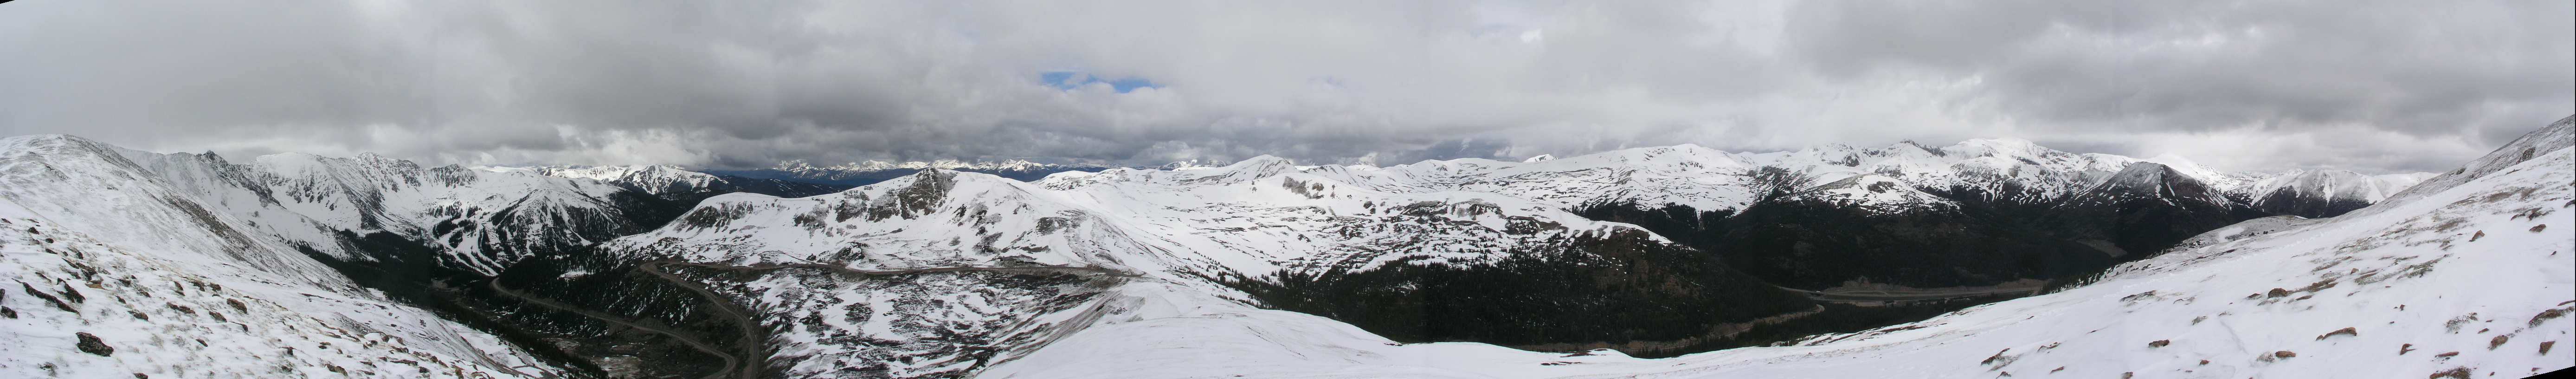 A nice panoram from Lonny around 13,000 ft at the Divide